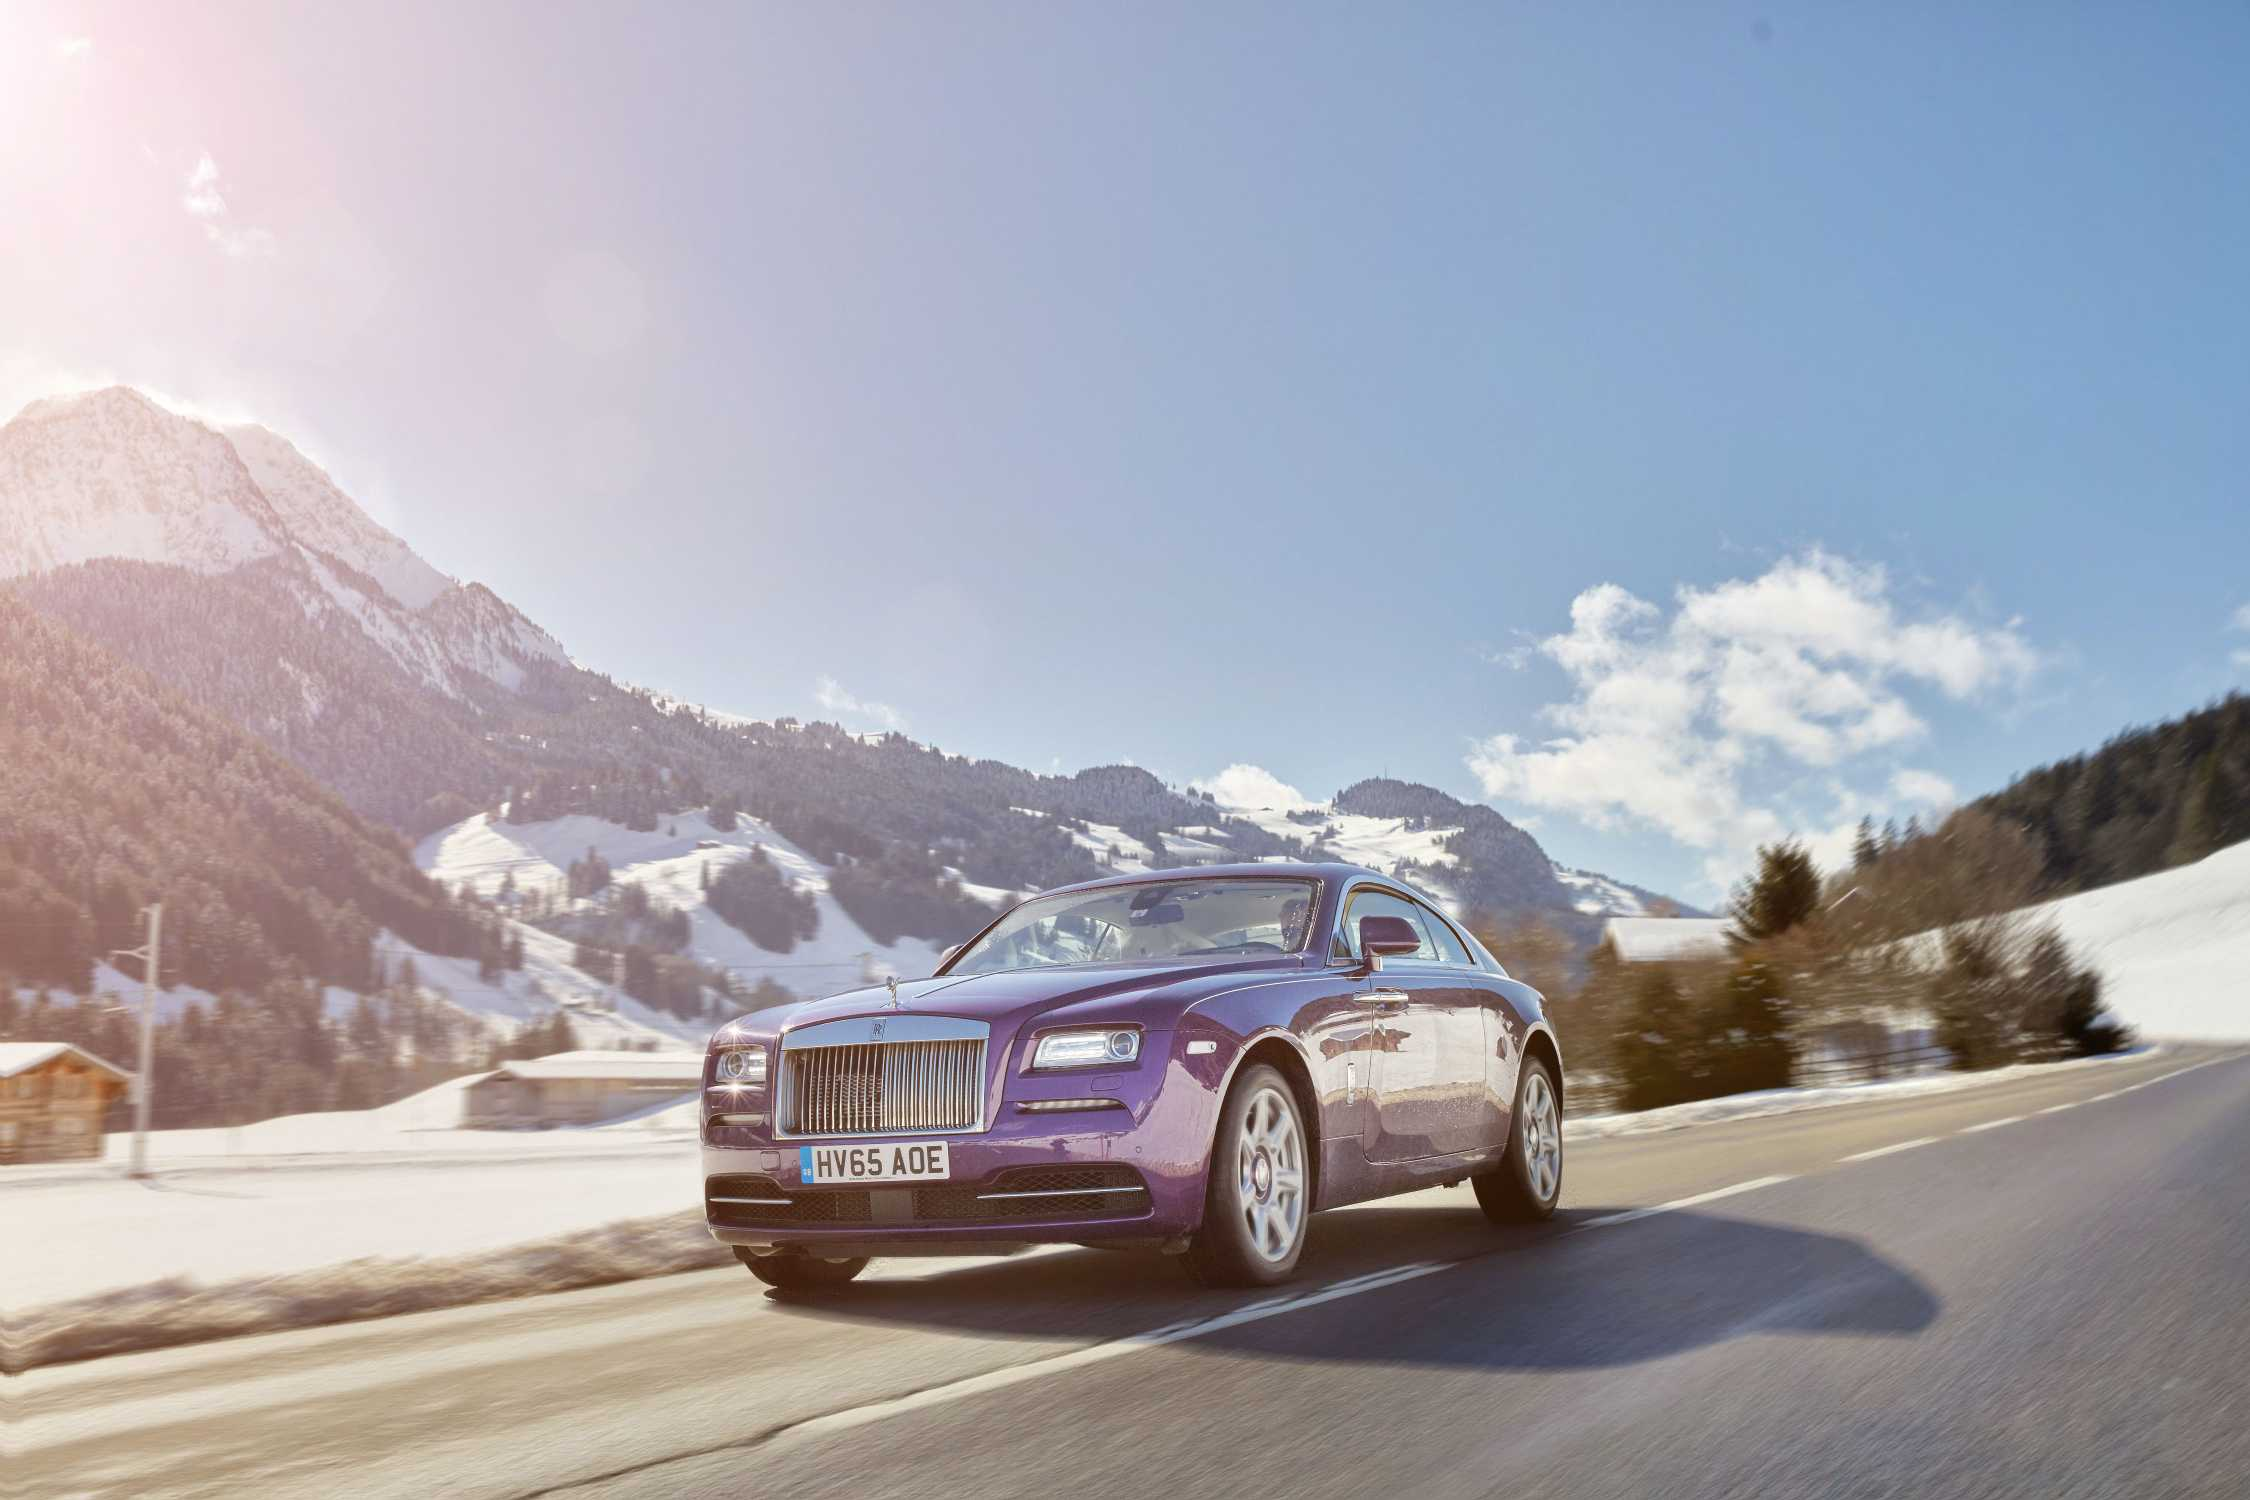 Rolls royce motor cars to grace courchevel and st moritz for Rolls royce motor cars